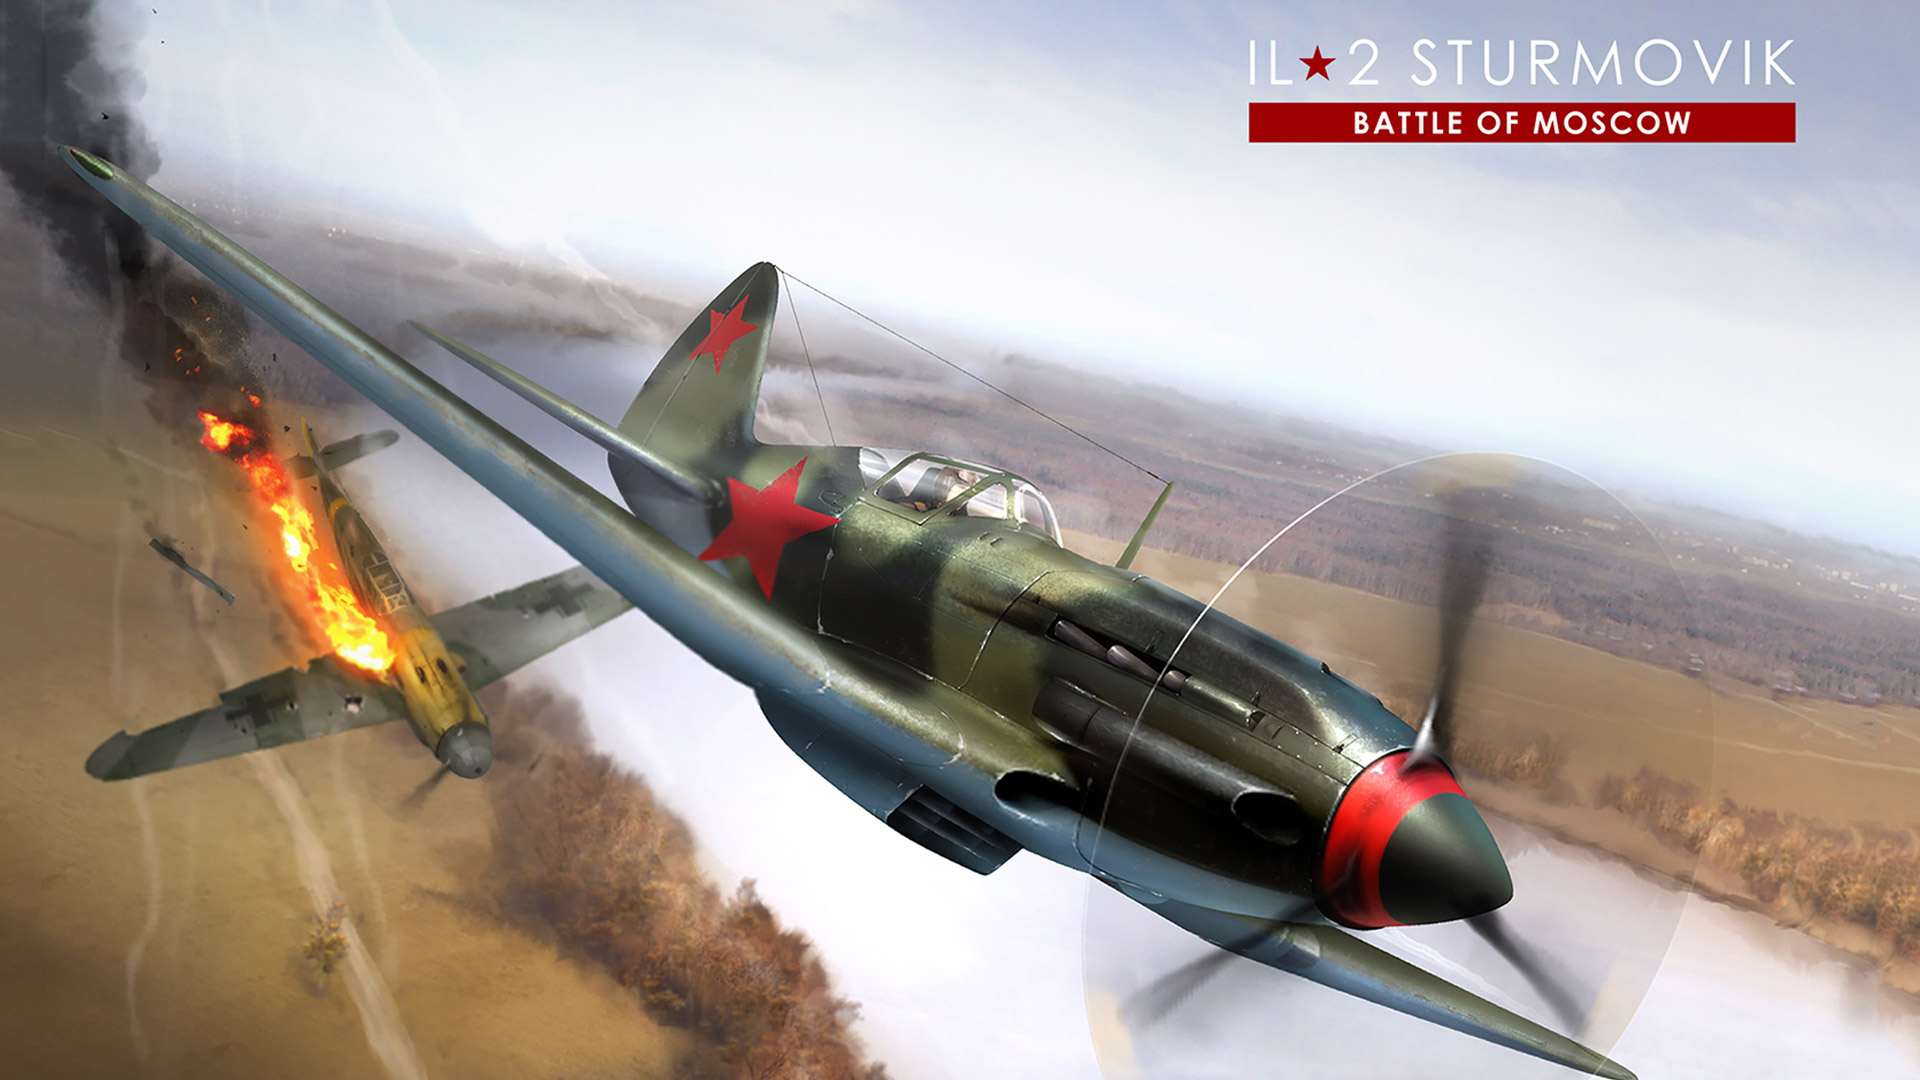 Free IL-2 Sturmovik: Battle of Stalingrad Wallpaper in 1920x1080